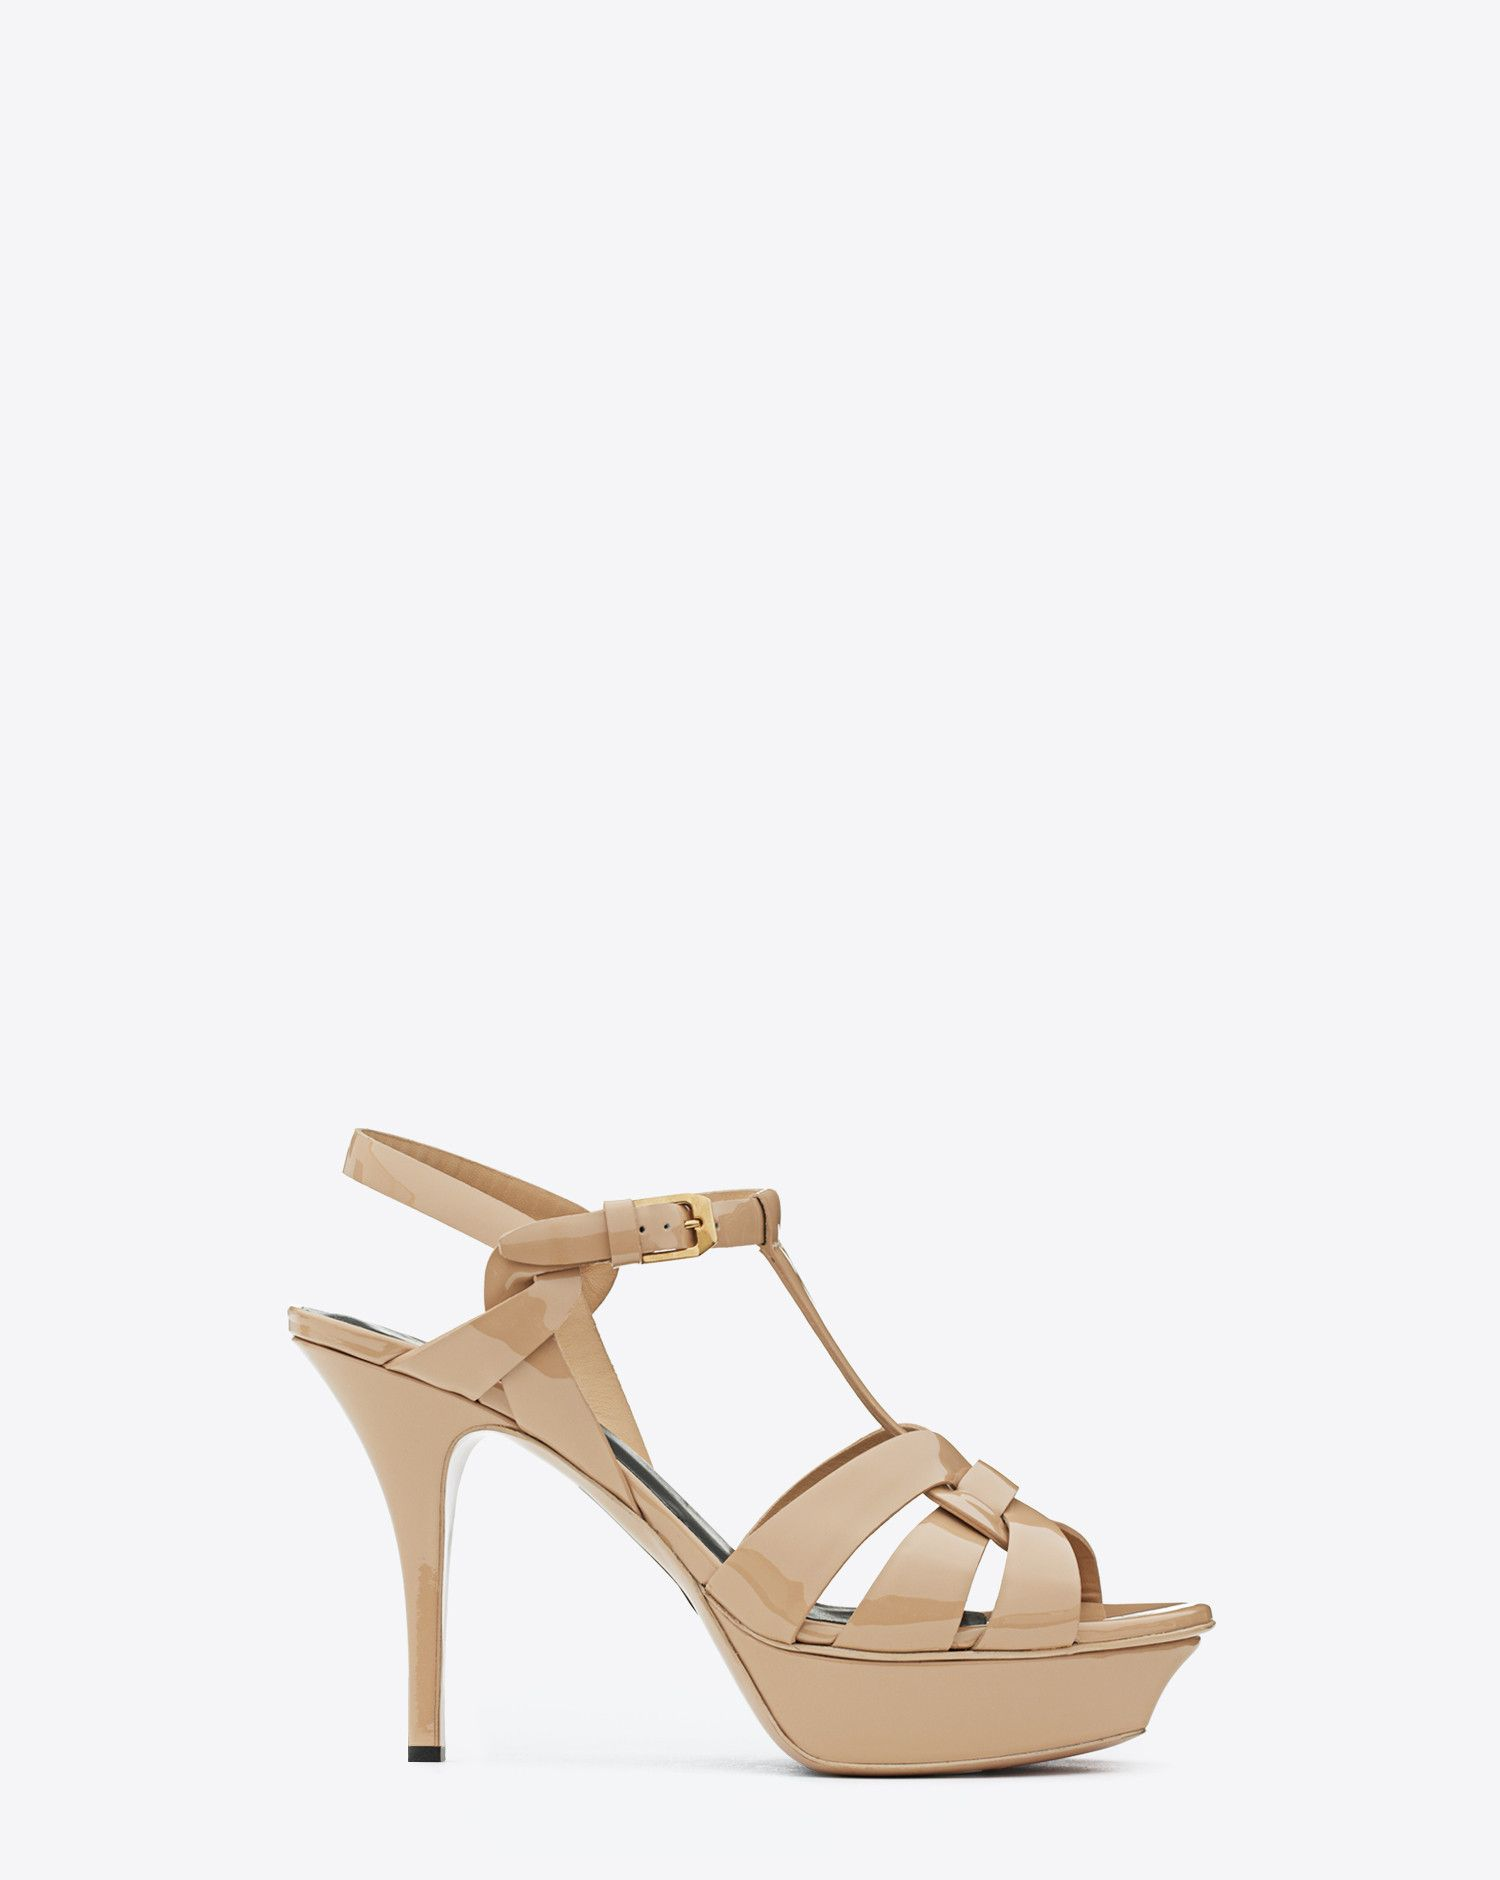 77b97fc9486 Saint Laurent CLASSIC TRIBUTE 75 SANDAL IN POWDER PATENT LEATHER - ysl.com